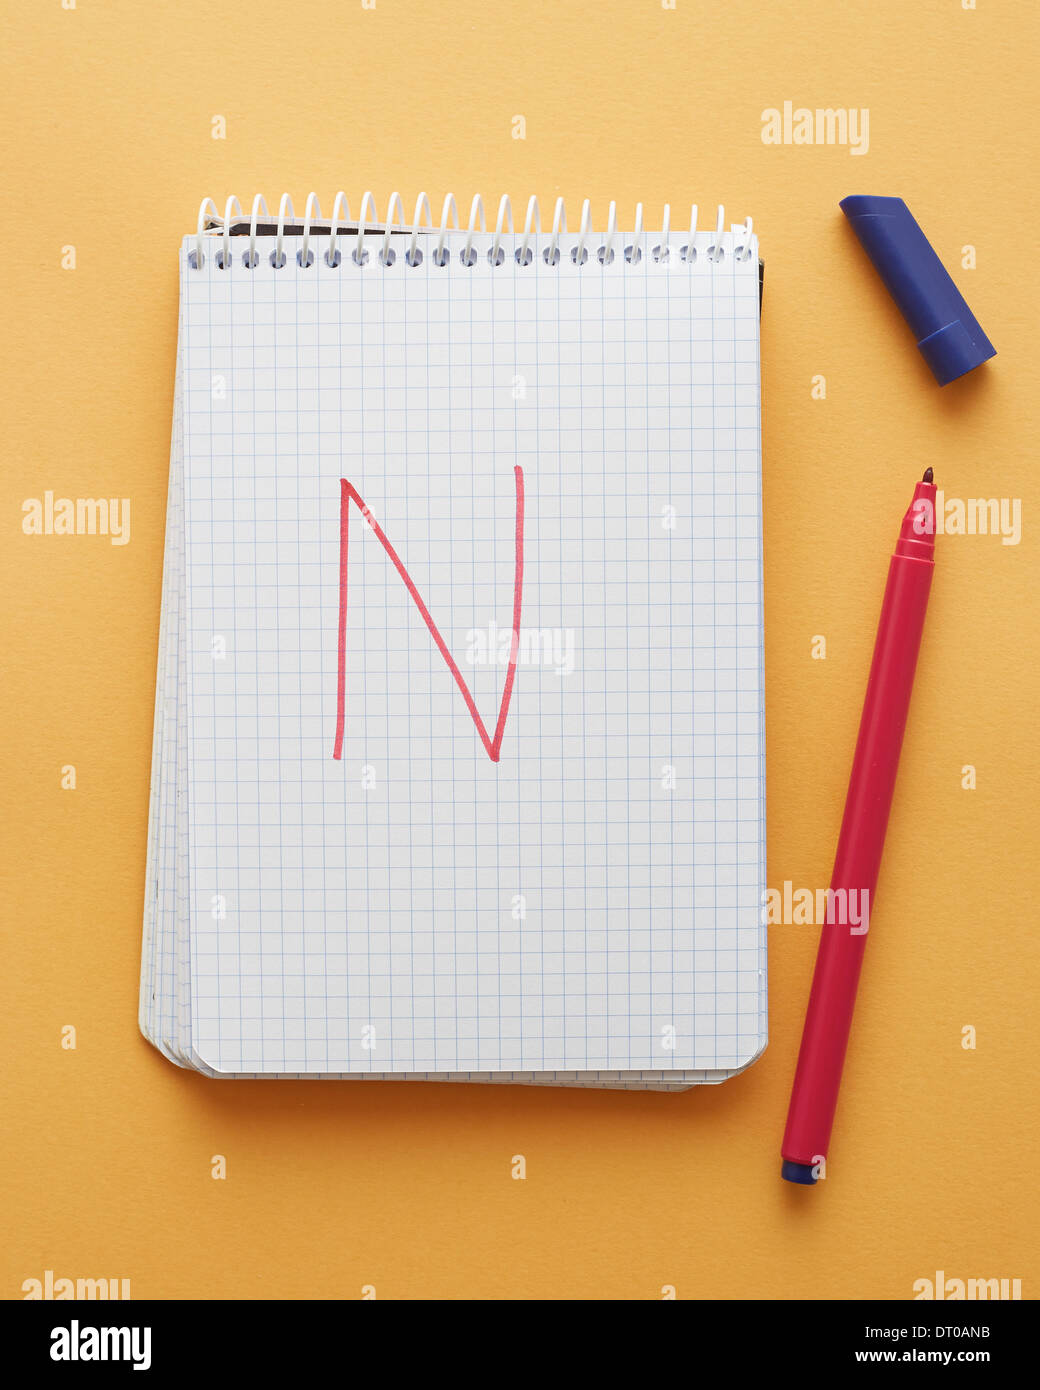 N letter handwritten in notebook page on yellow background alphabet - Stock Image